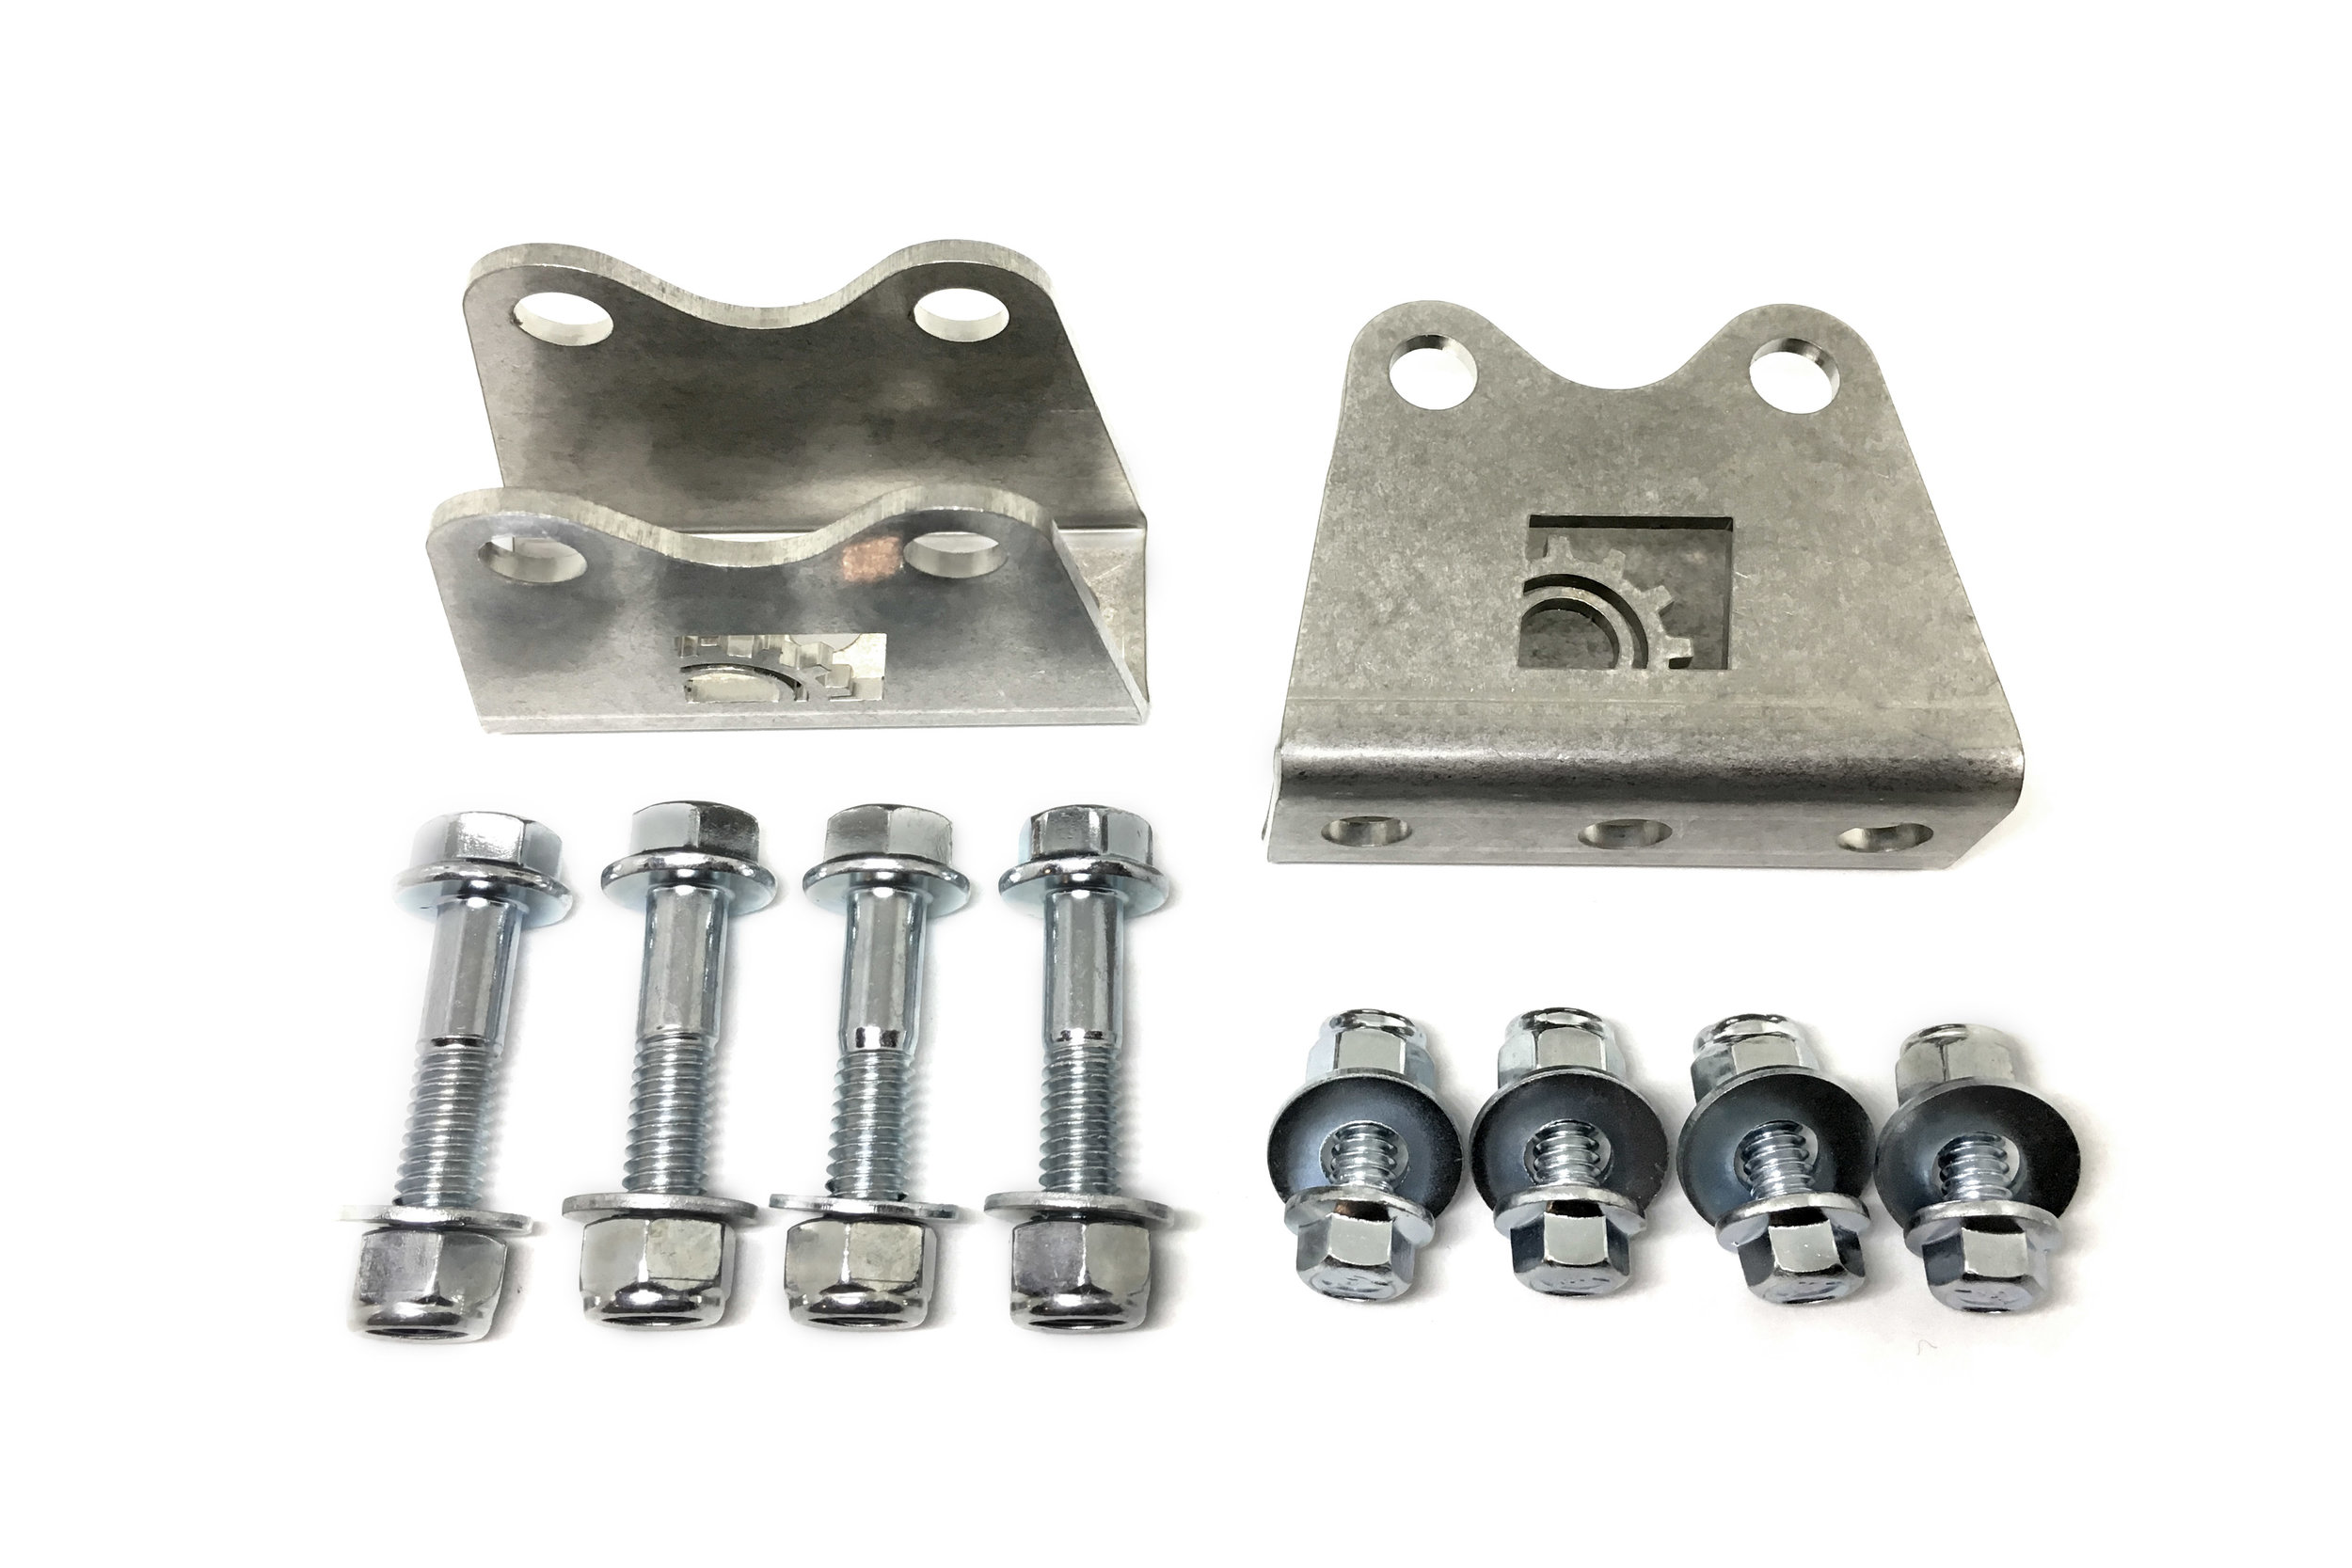 Shown here are the mounts, sold in pairs, along with all included grade 5 hardware.